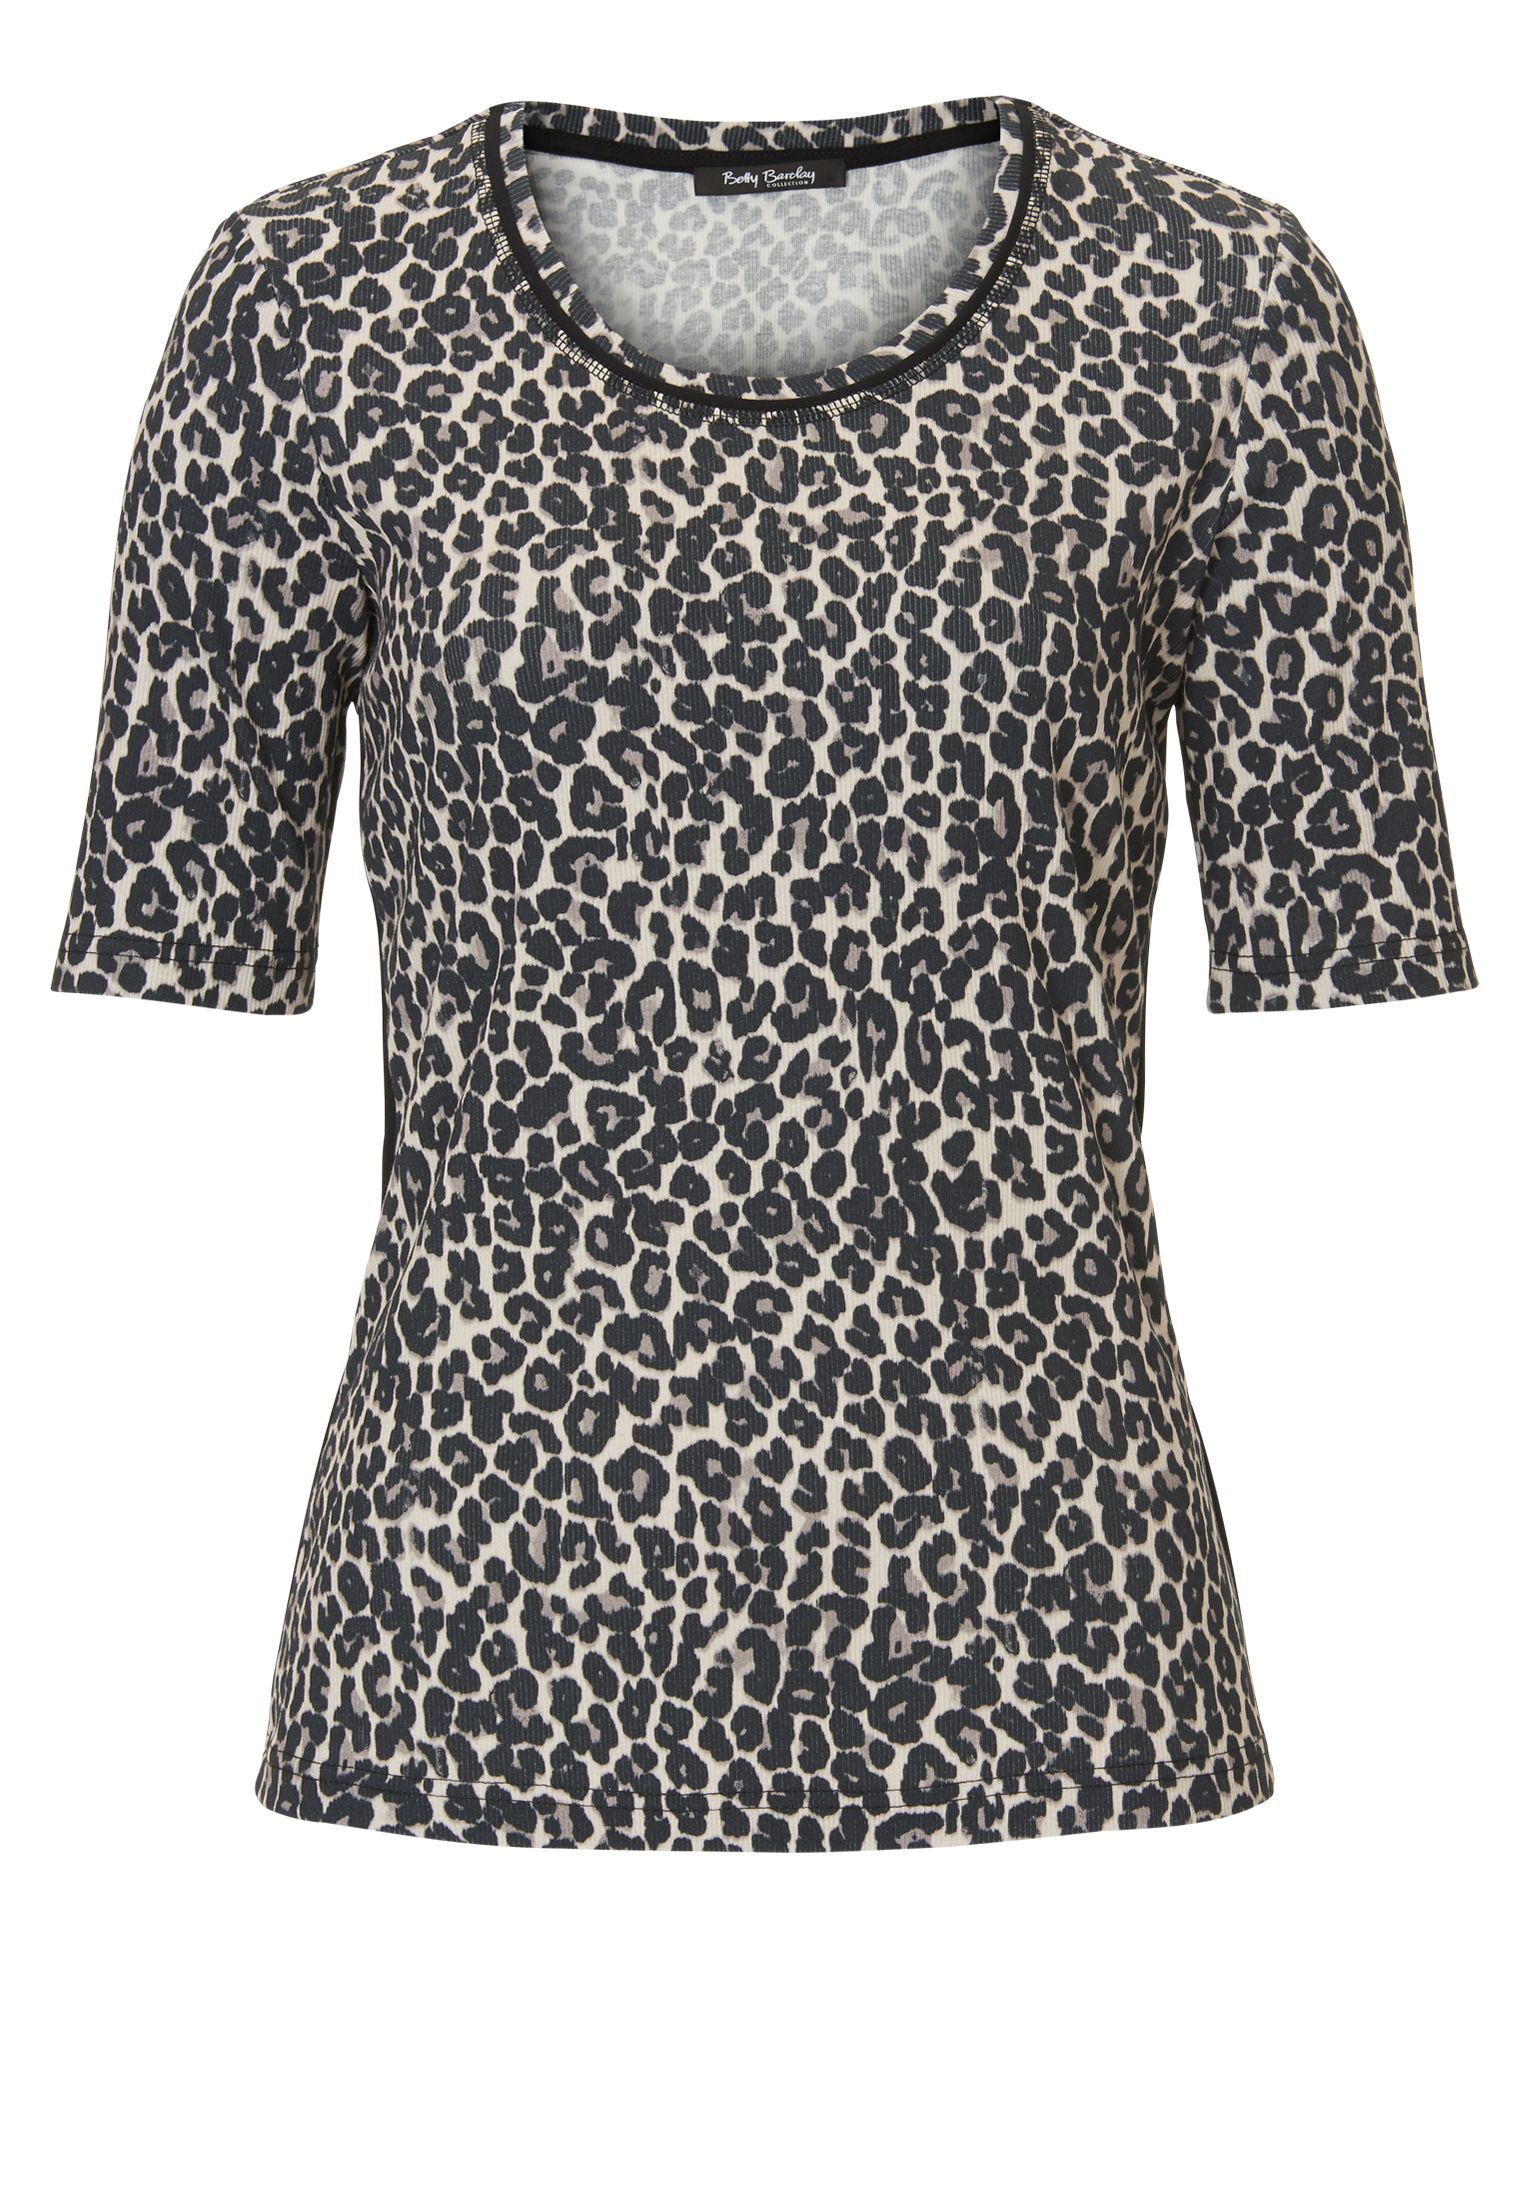 Betty Barclay Animal print T-shirt, Multi-Coloured